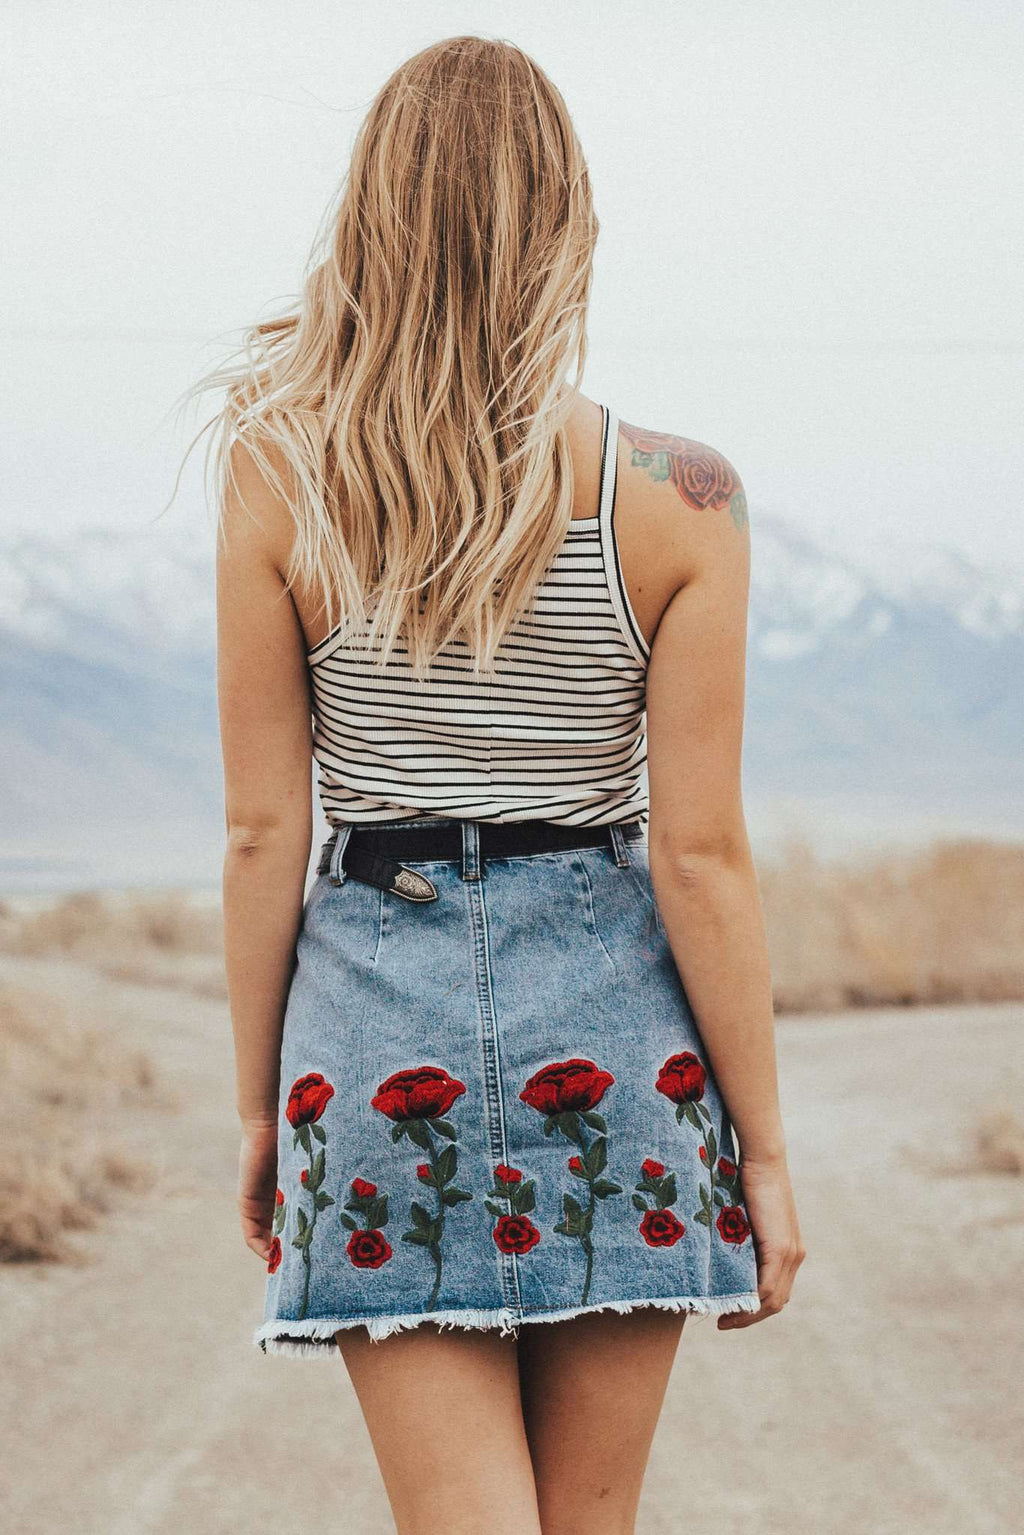 Rose Embroidered Denim Mini,Women - Apparel - Skirts - Mini